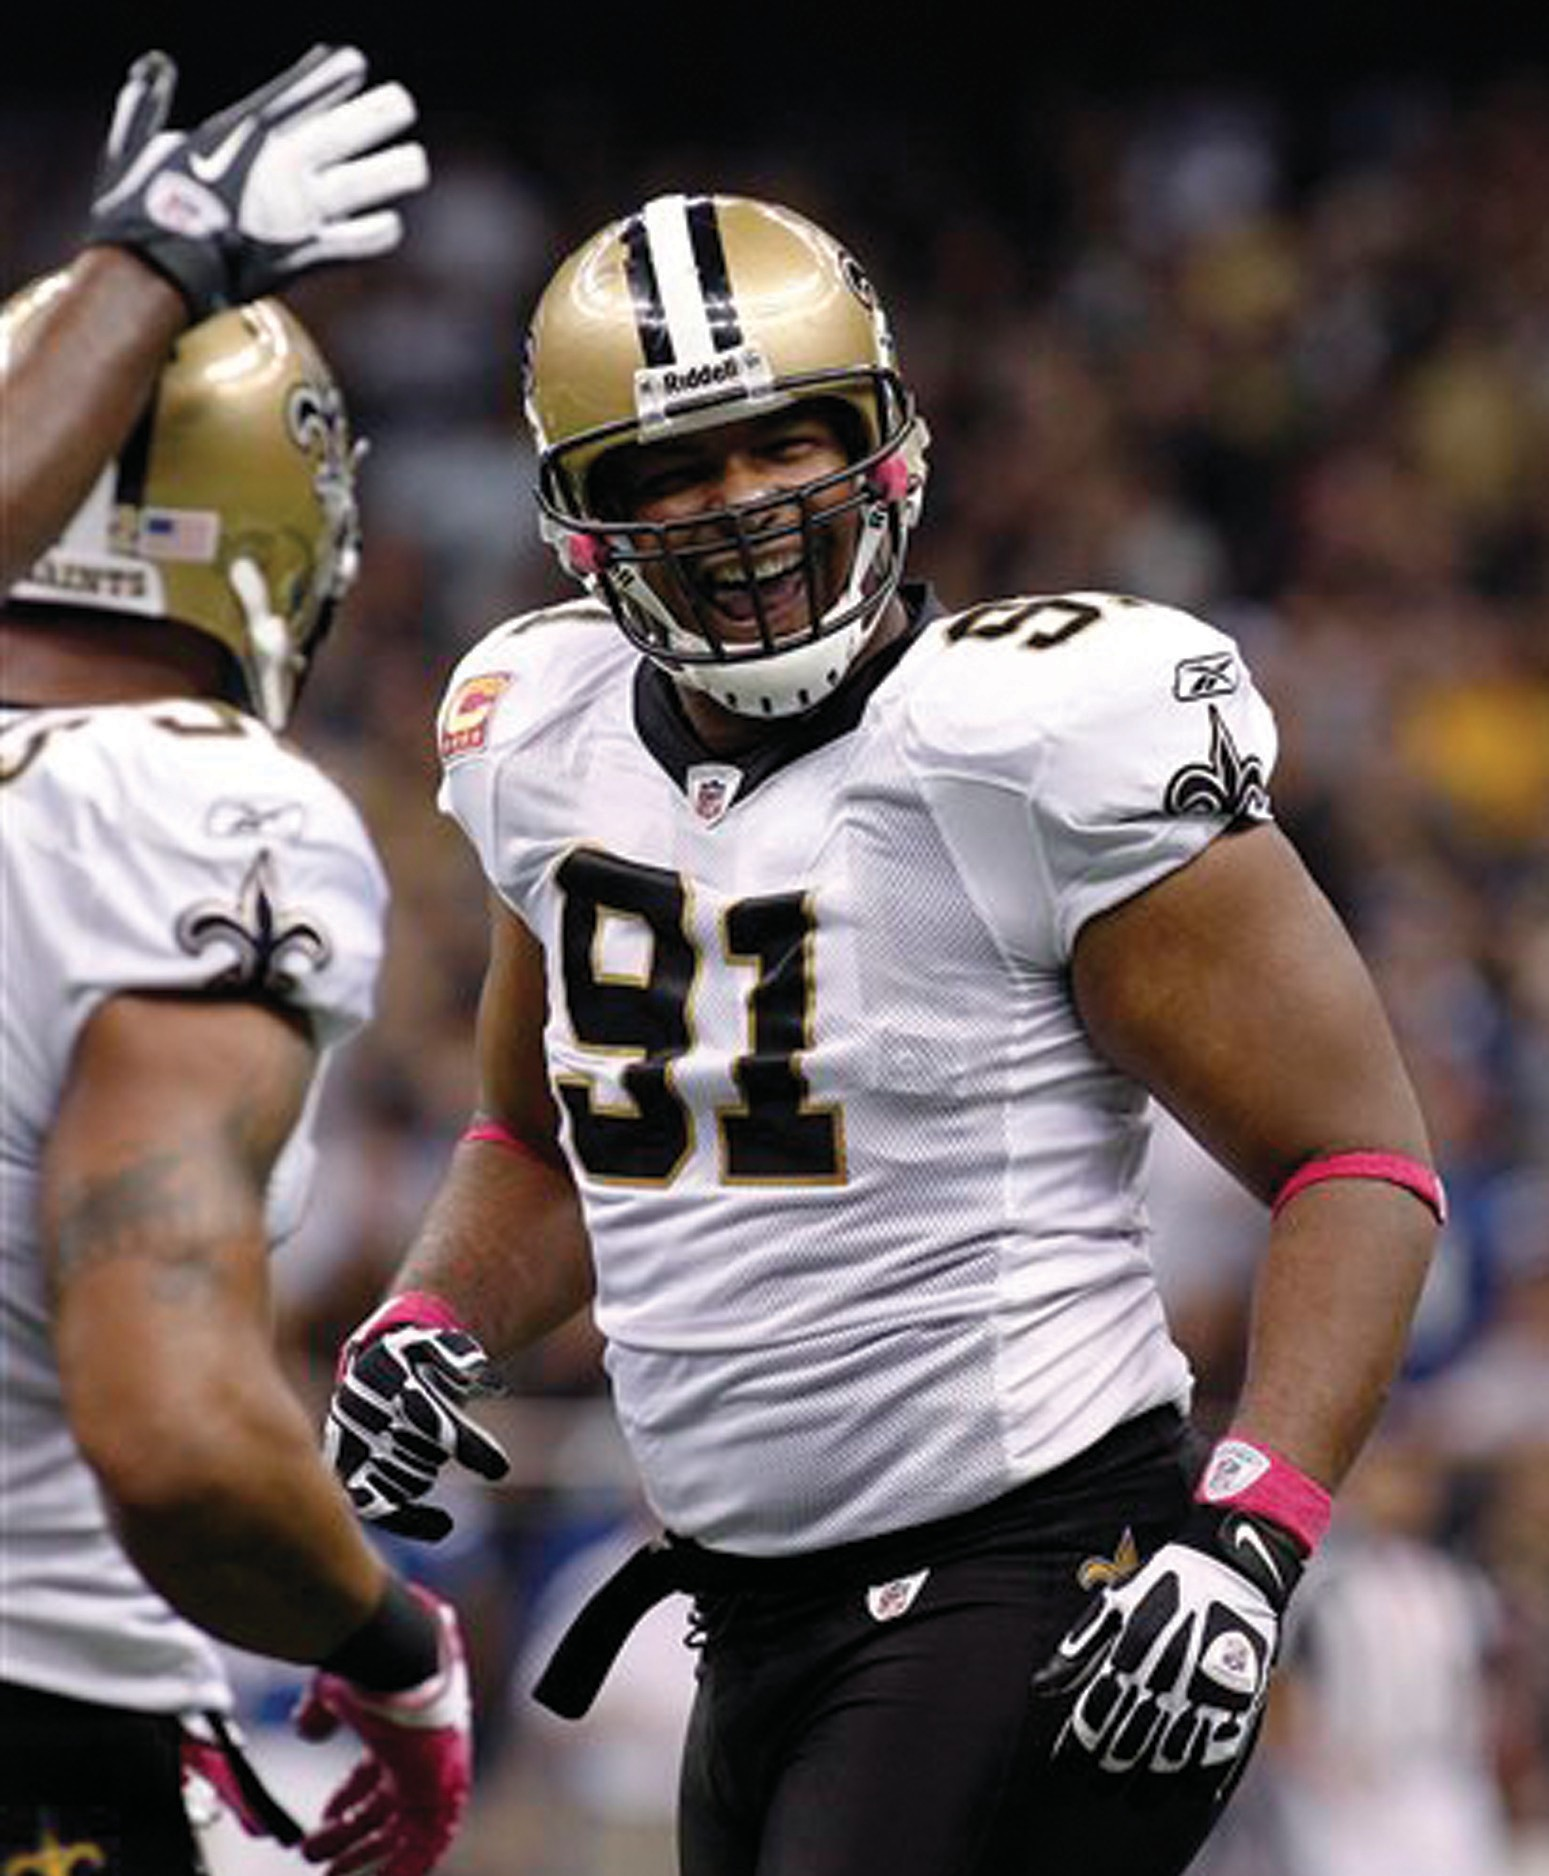 In this Oct. 23, 2011, file photo, New Orleans Saints defensive end Will Smith (91) celebrates after pressuring Indianapolis Colts quarterback Curtis Painter in New Orleans. Former New Orleans Saints player Will Smith was shot in the back and side, according to a warrant read in court Sunday night in New Orleans before a magistrate set a $1 million bond for the man accused of killing him. Police said Smith, 34, was killed in a case of road rage by a man who had rear-ended his car.